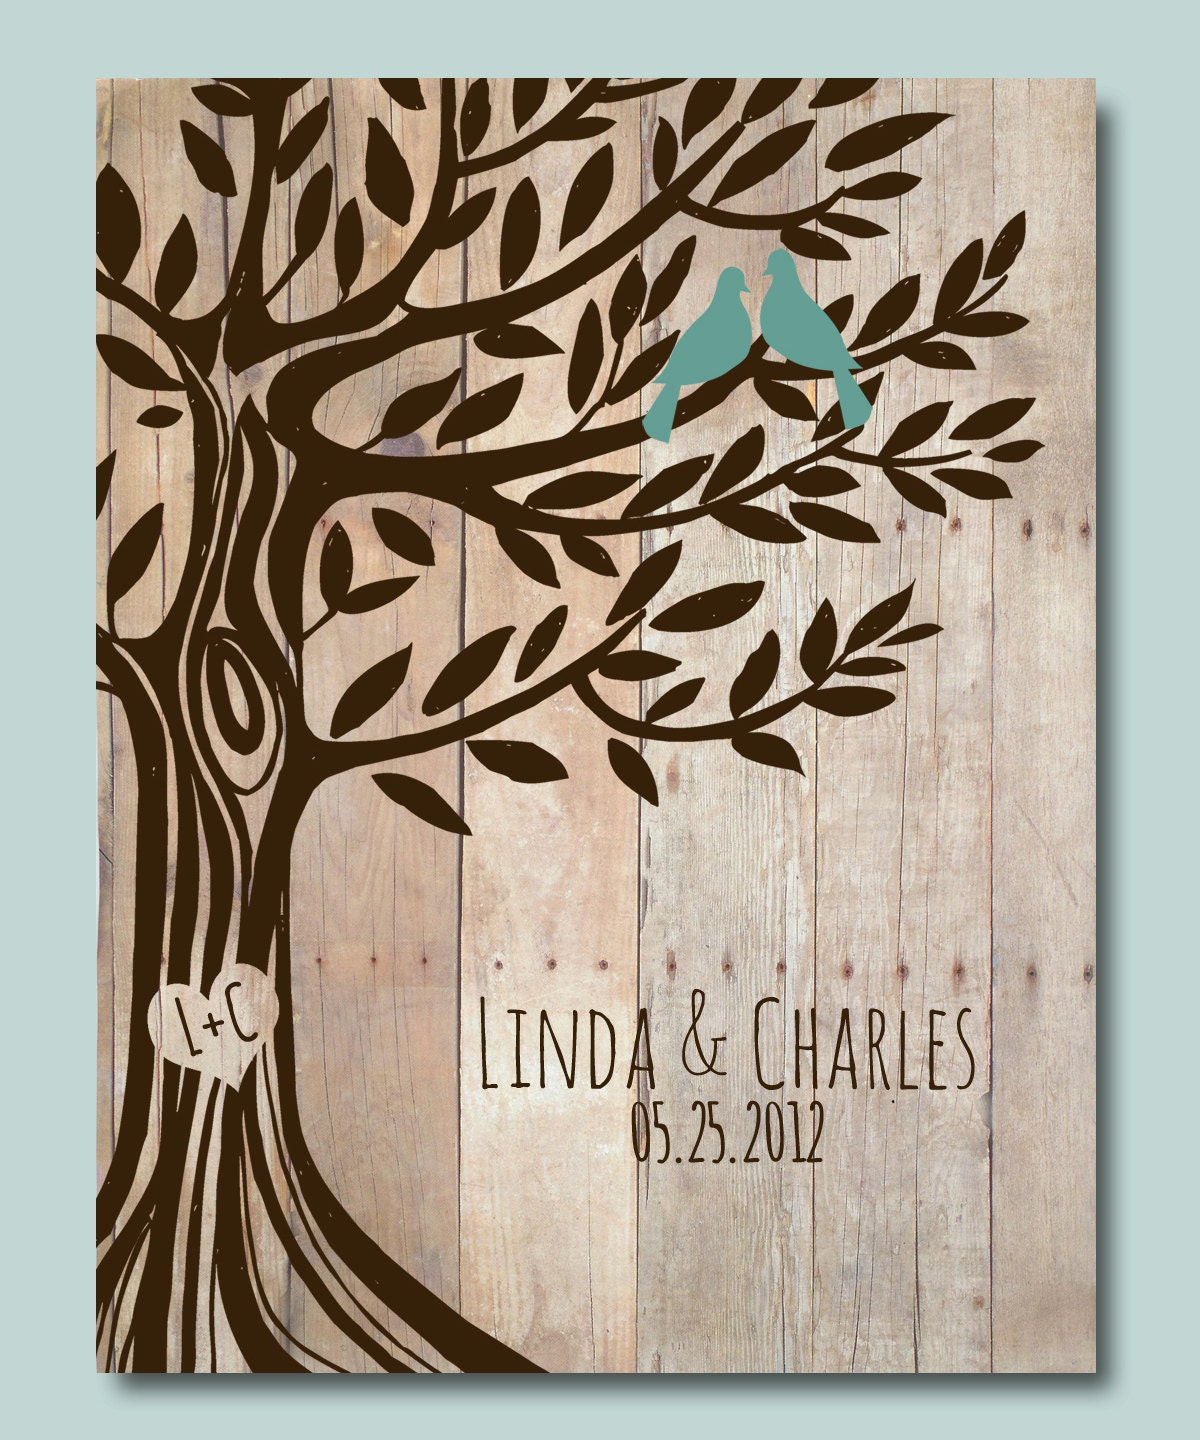 Ideas For Wedding Gift: Personalized Wedding Gift Love Birds Tree Engagement Gift